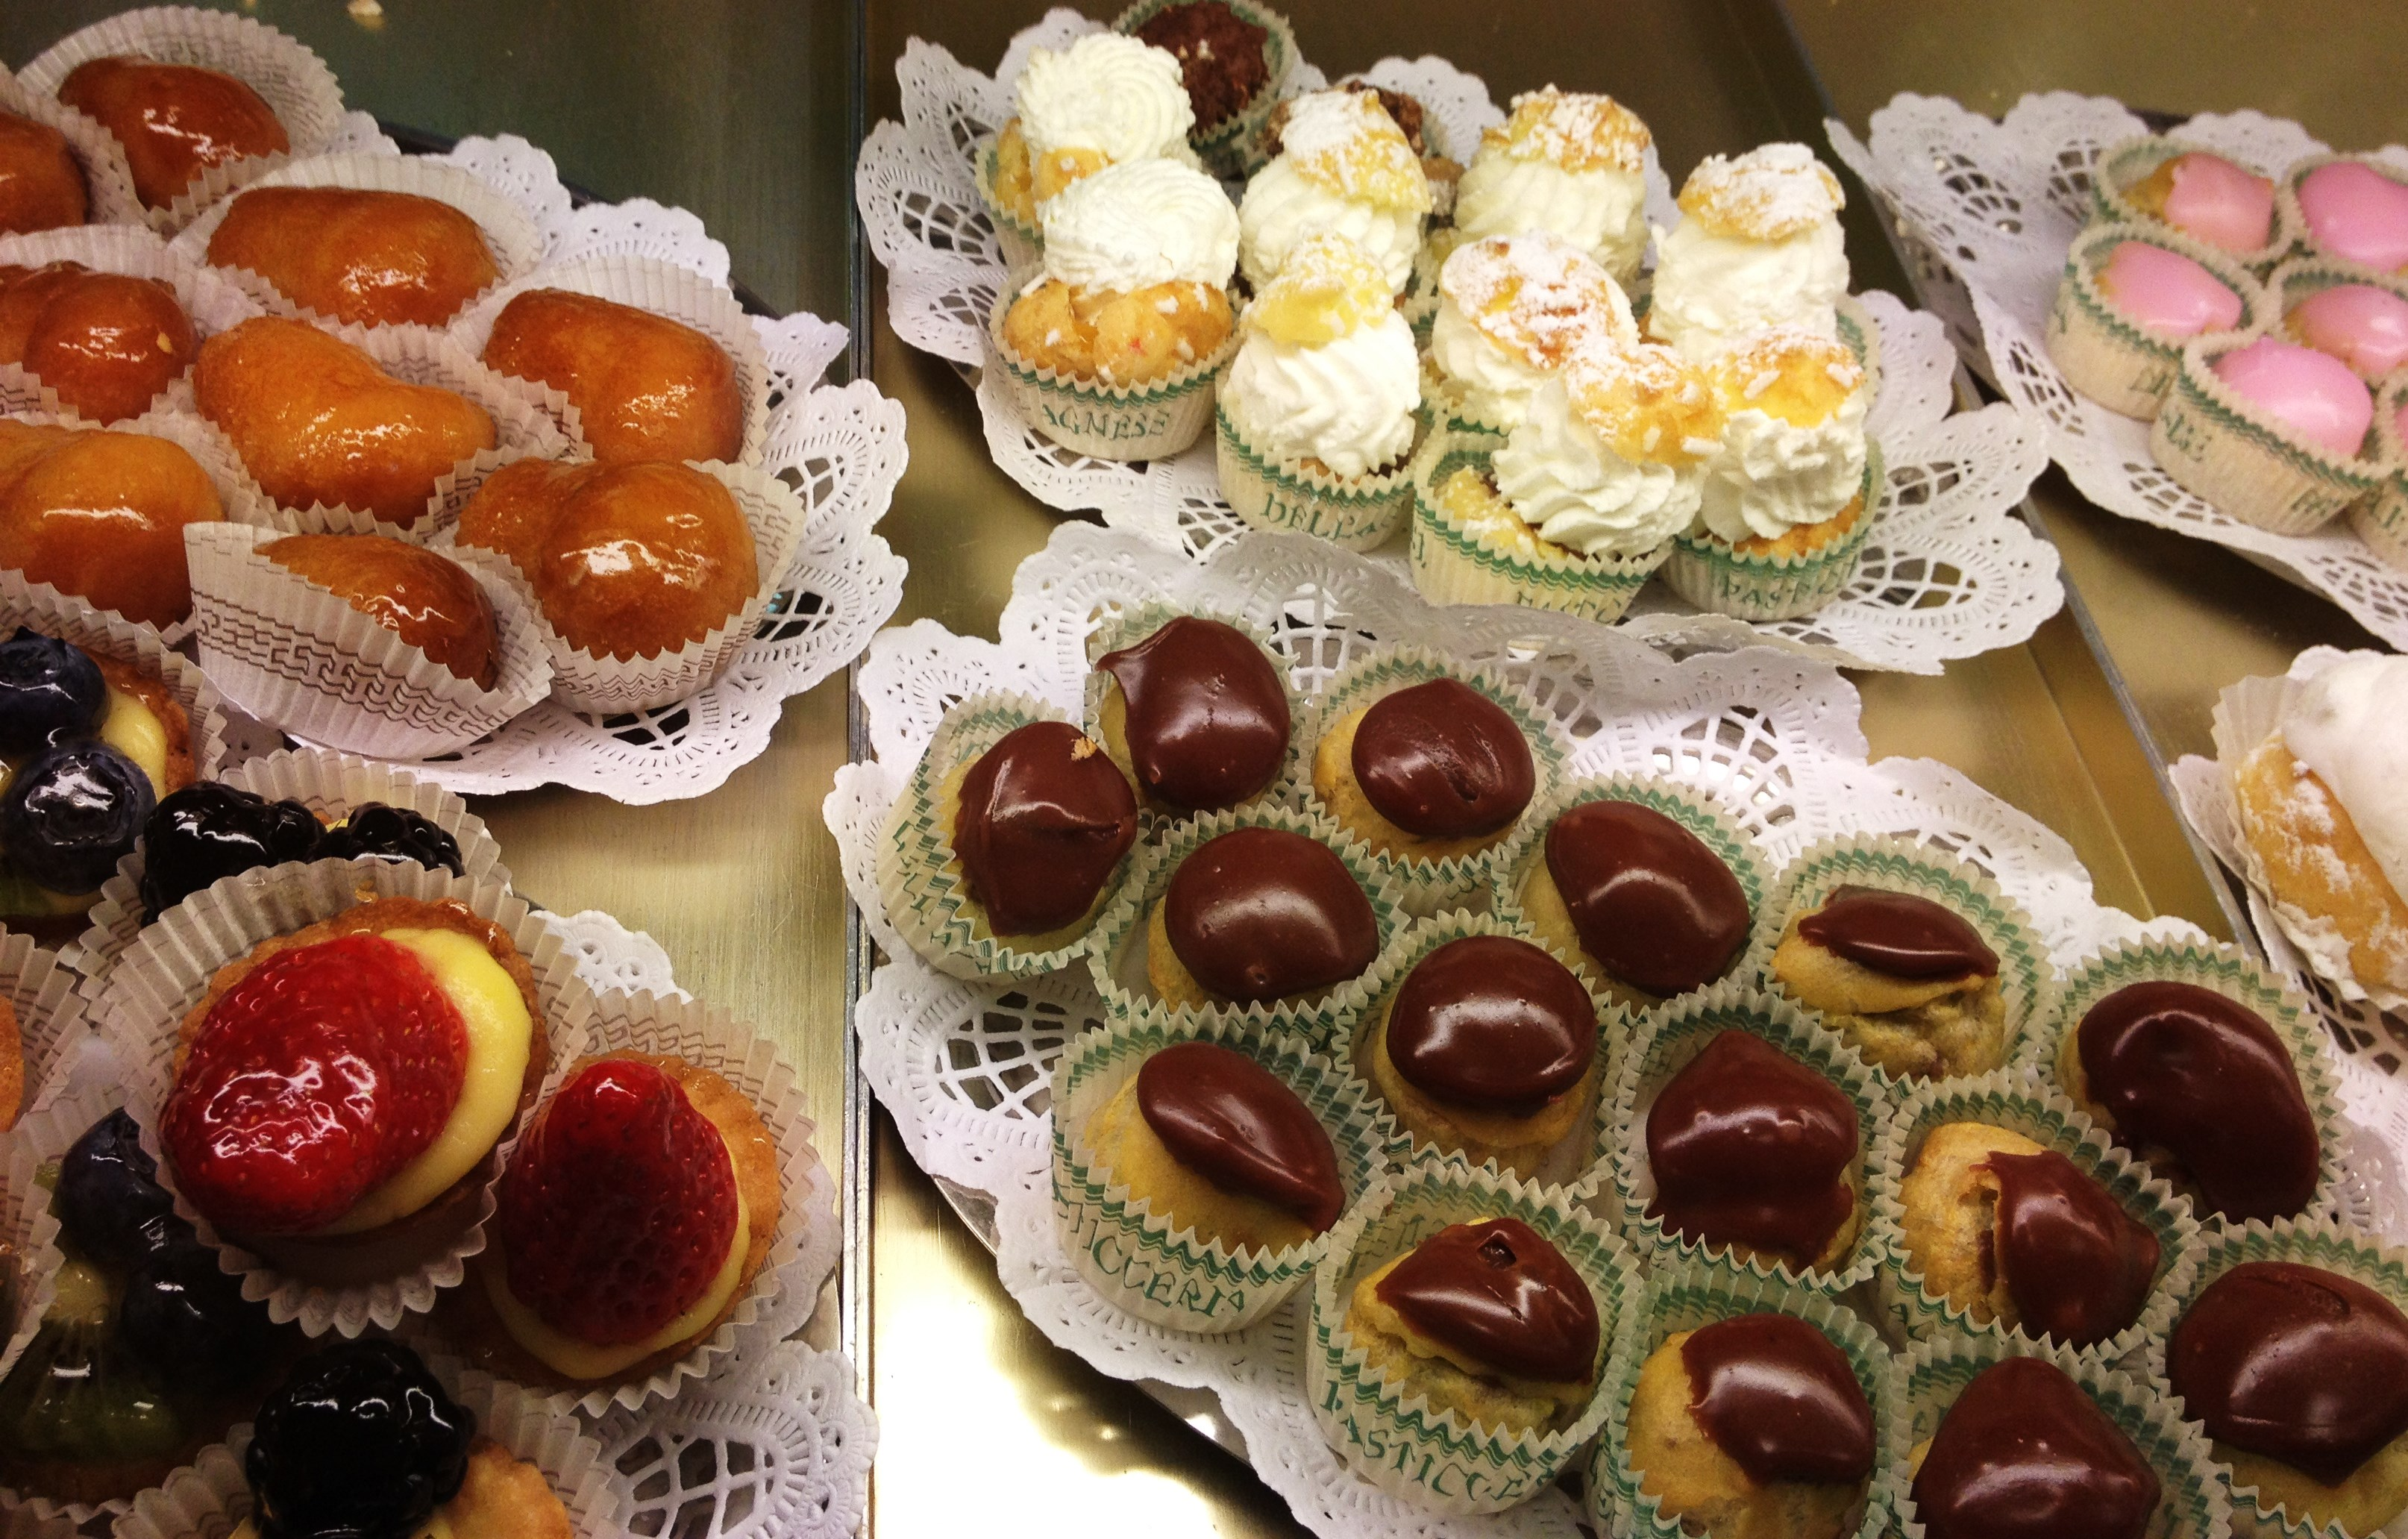 Italian Pastries Best Places For Pastries In Turin